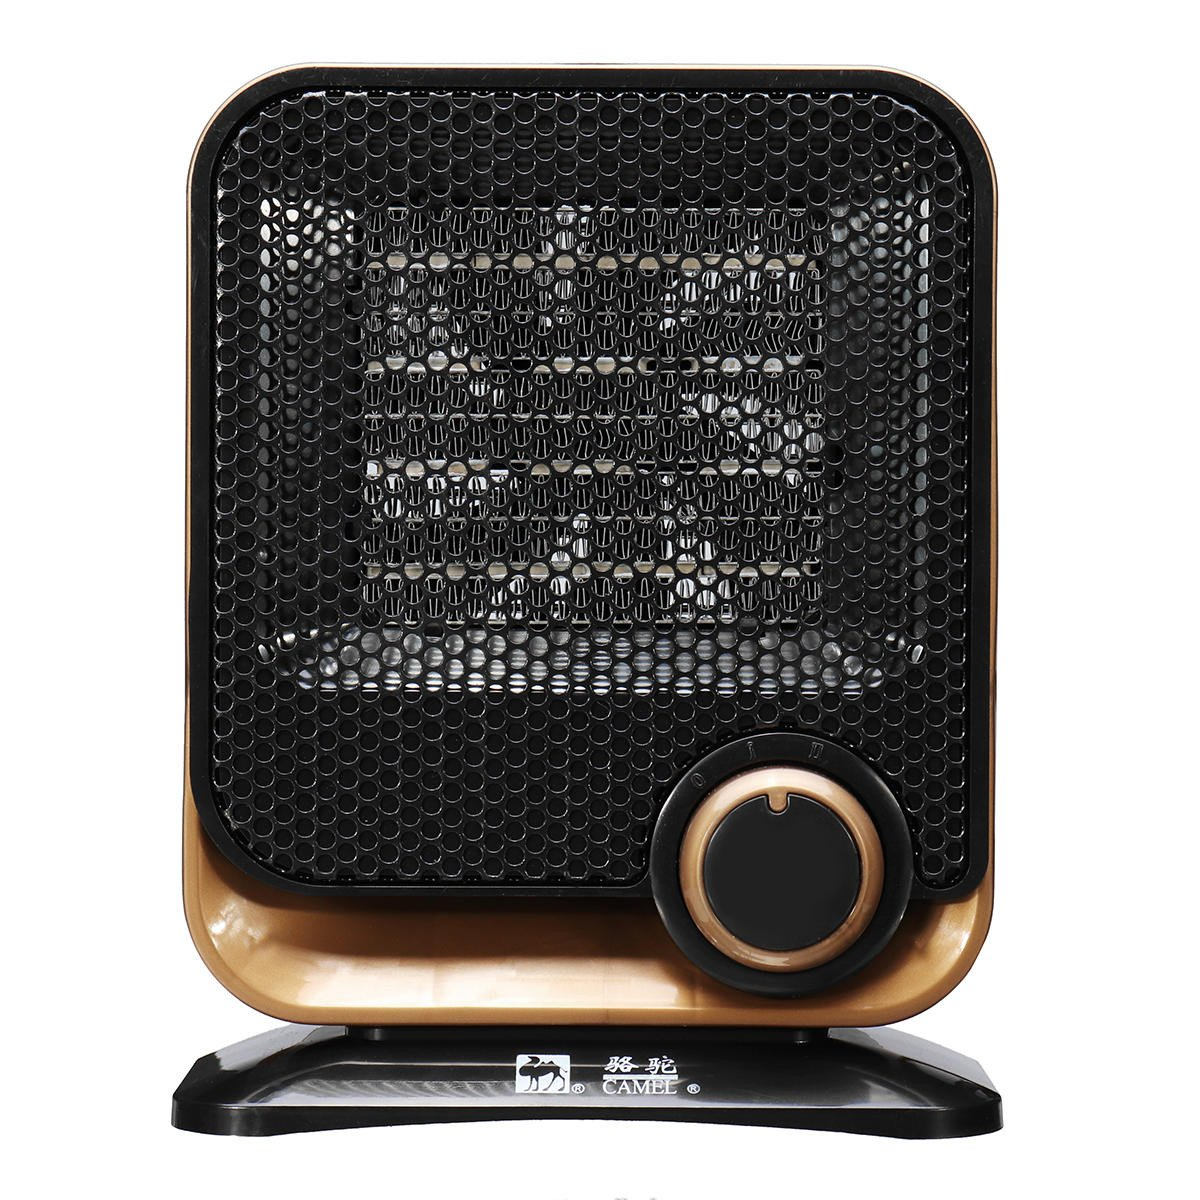 Small Heaters for Bedroom Awesome 1500w Mini Portable Heater Fan Ptc Ceramic Space Heater Desktop Electric Heater Winter Warmer